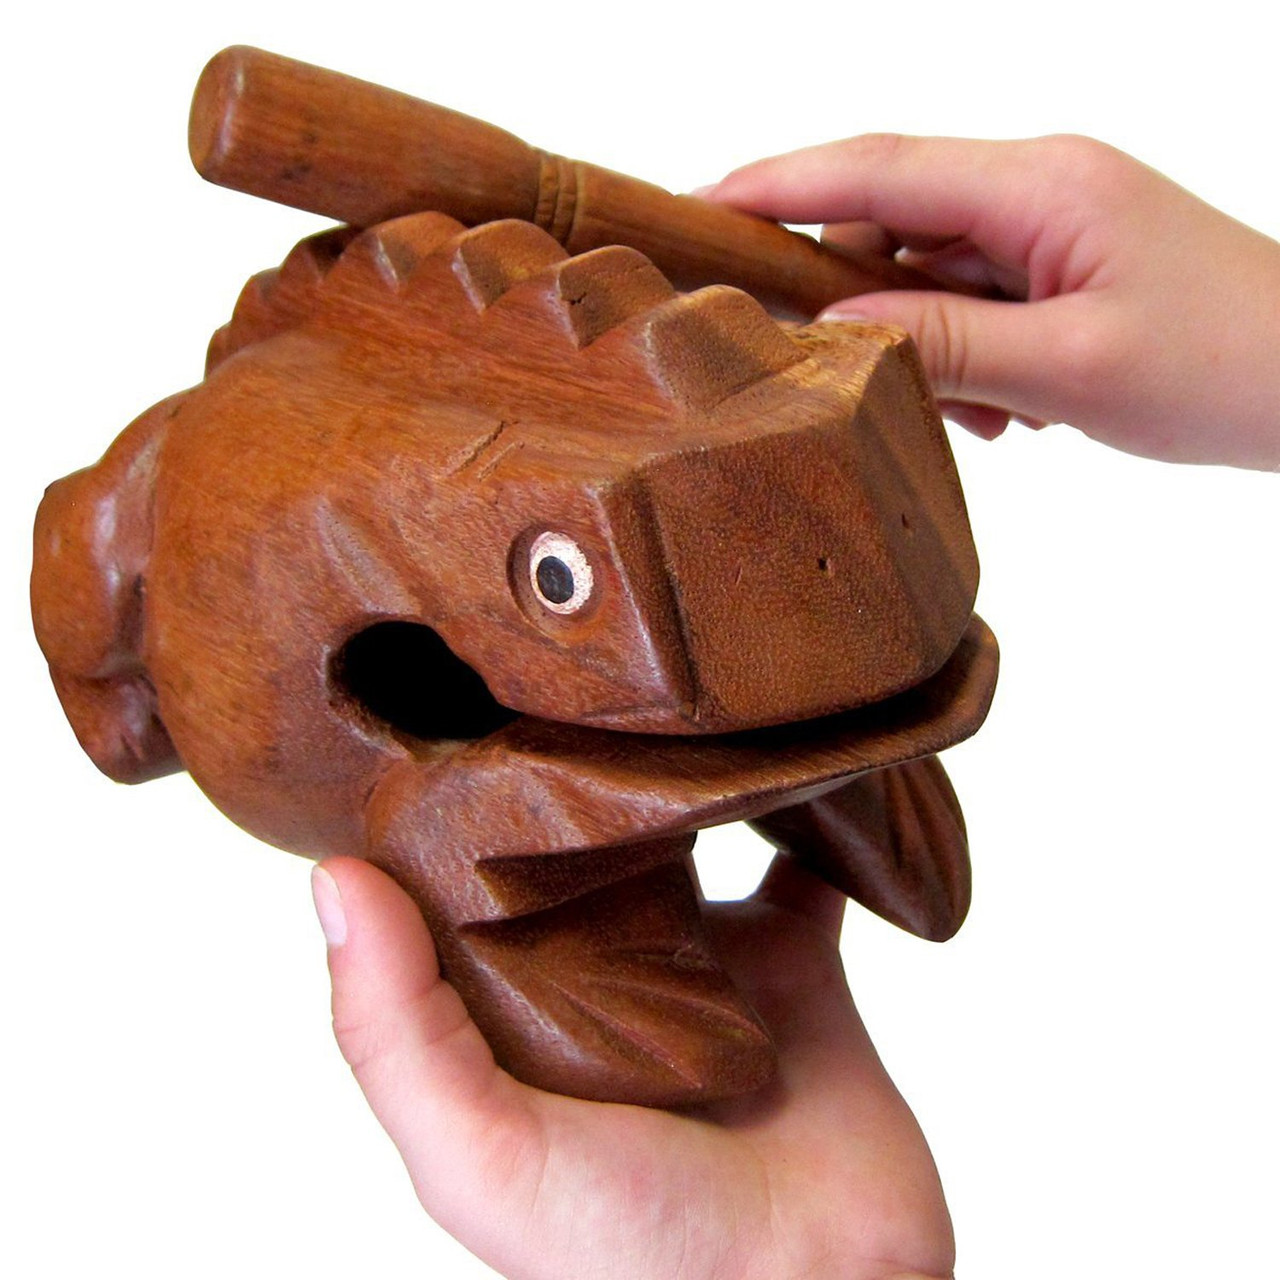 Frog Wood Craved Instrument Percussion Crocking Rasp Music Sound Tone Small Size